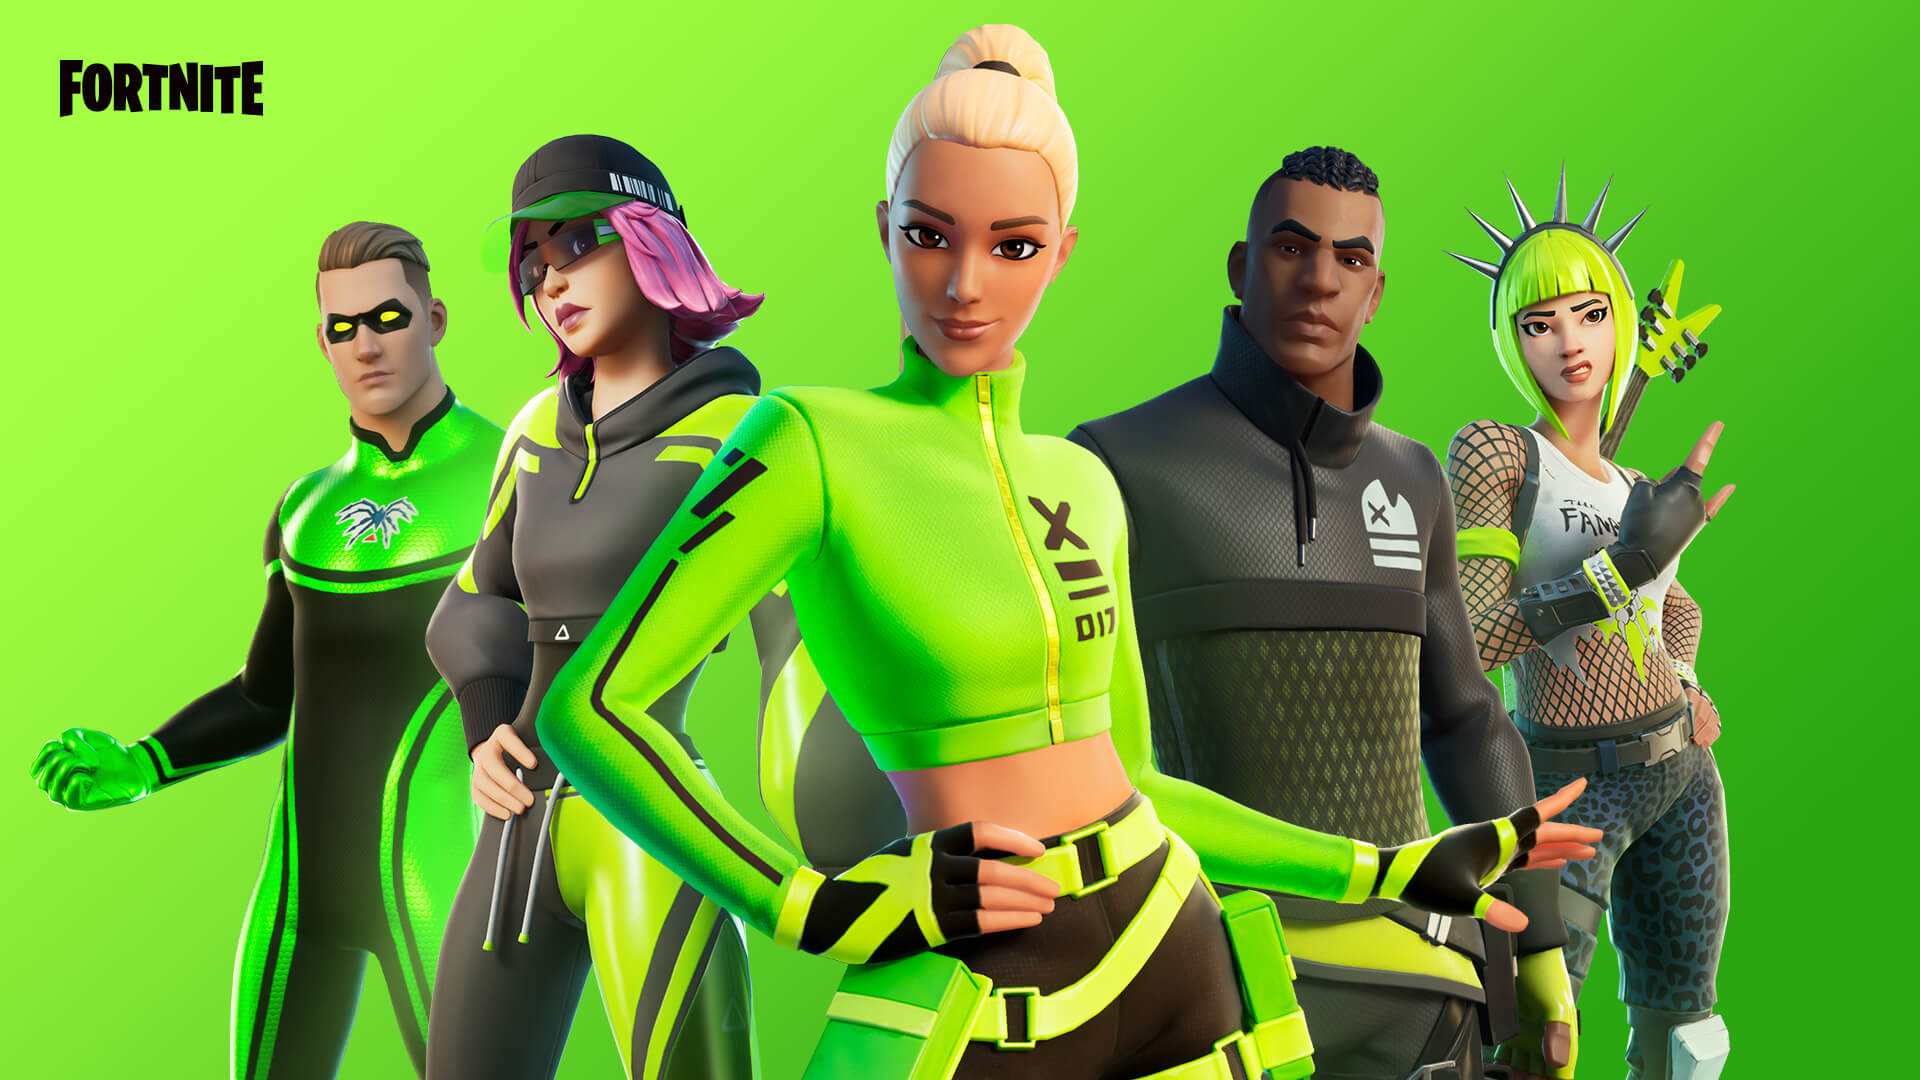 Duo Desert Map Fortnite Code The Best Fortnite Creative Map Codes For The Week Of June 1 2021